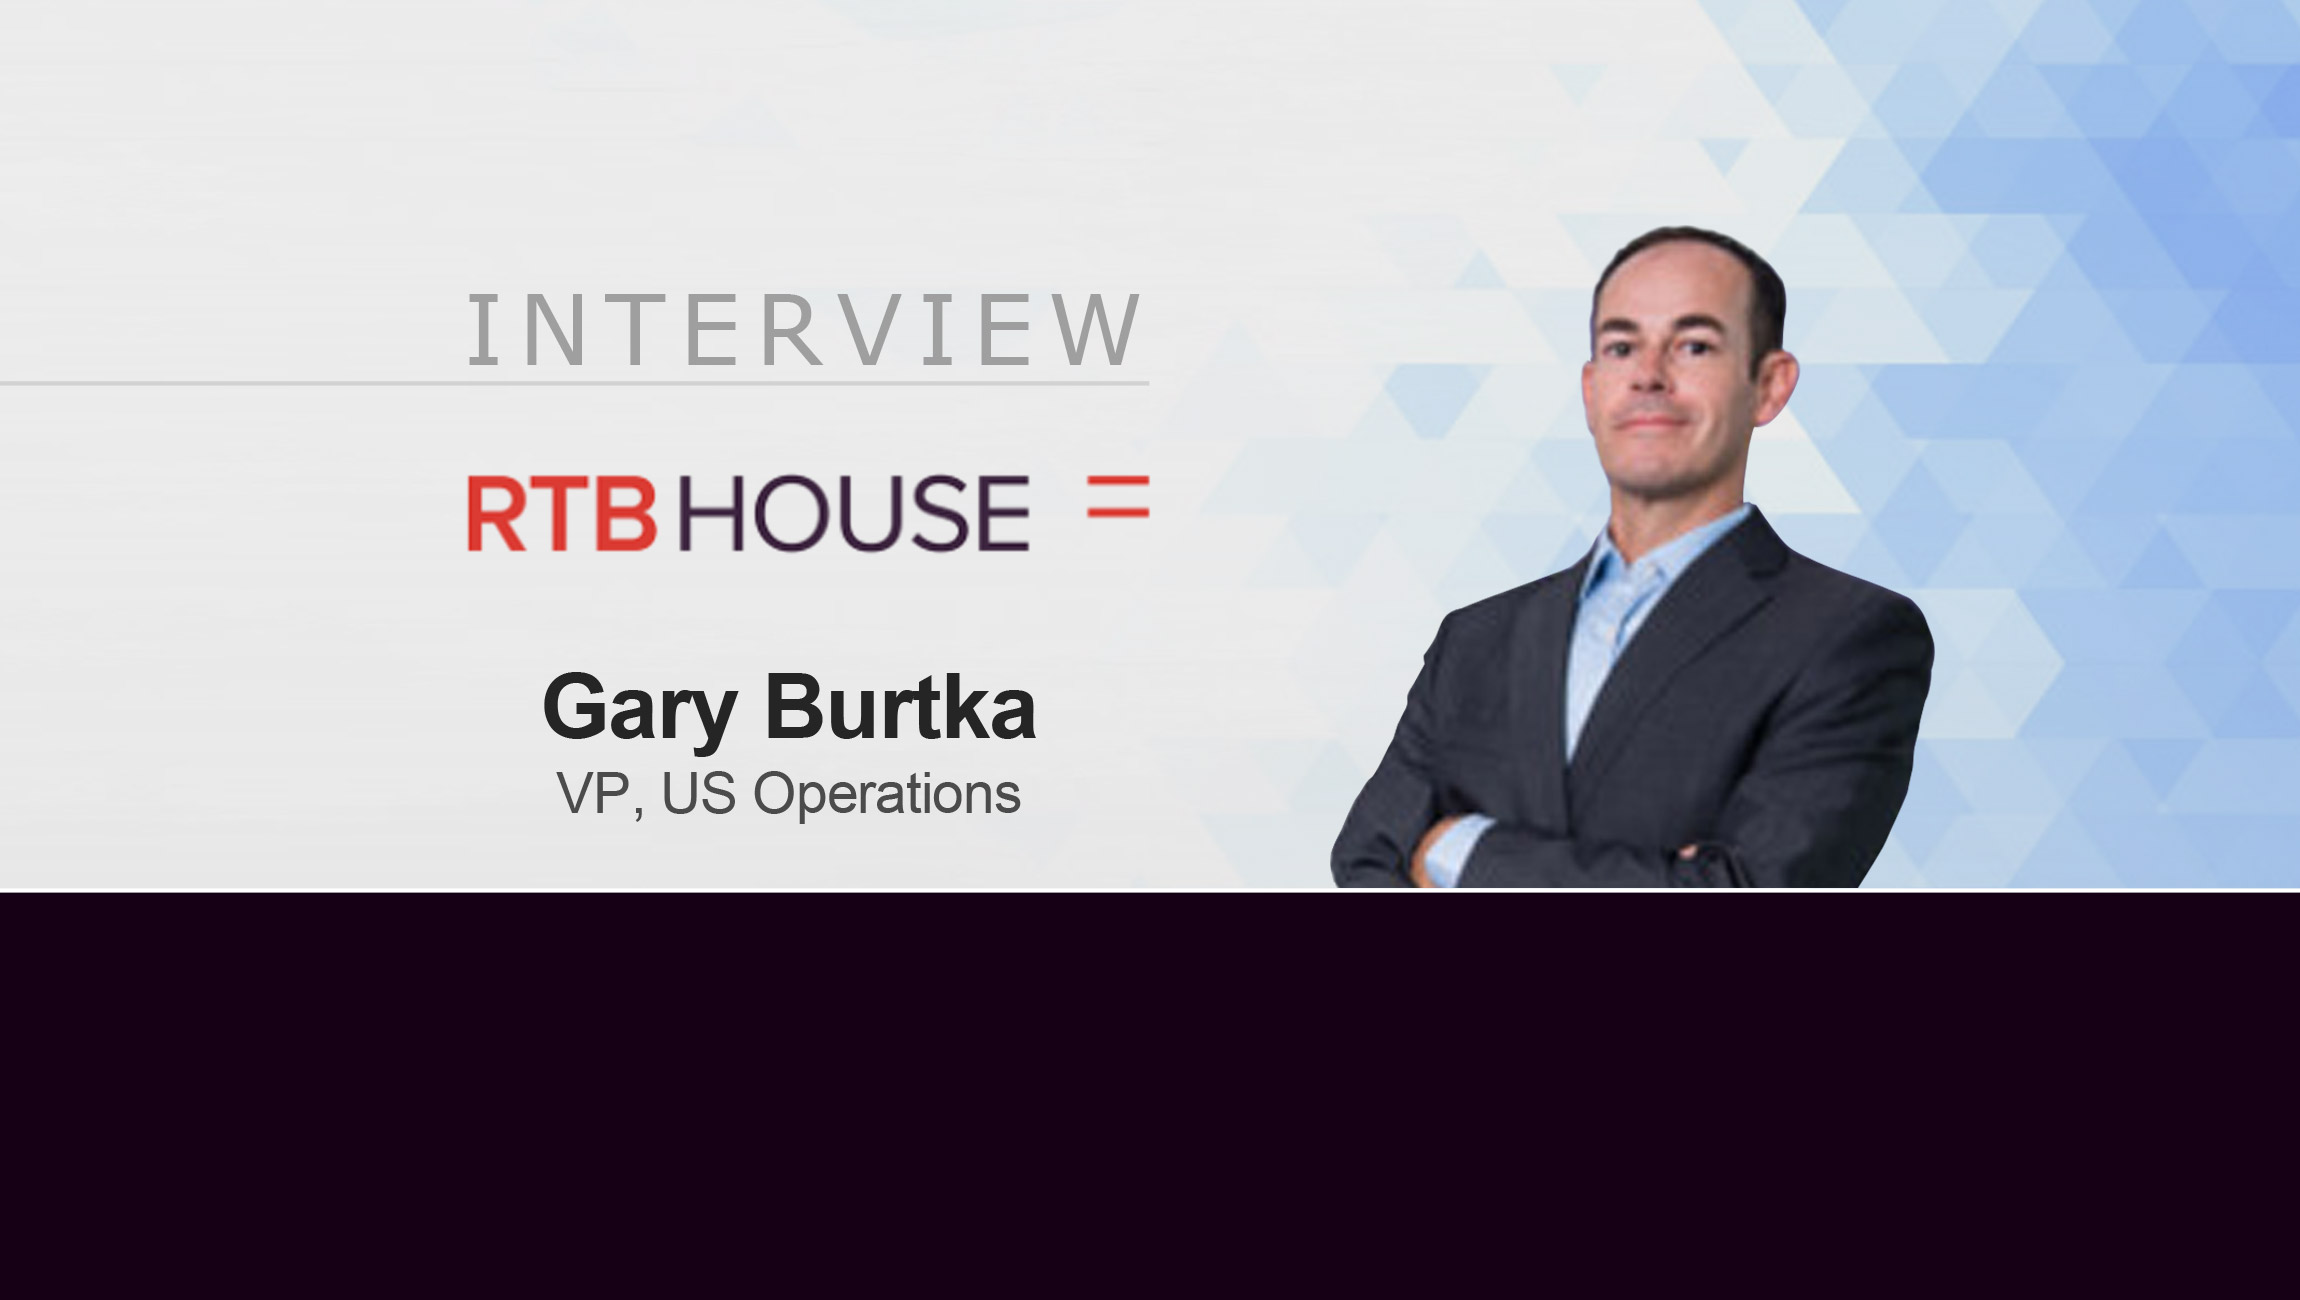 MarTech Interview with Gary Burtka, VP U.S. Operations at RTB House